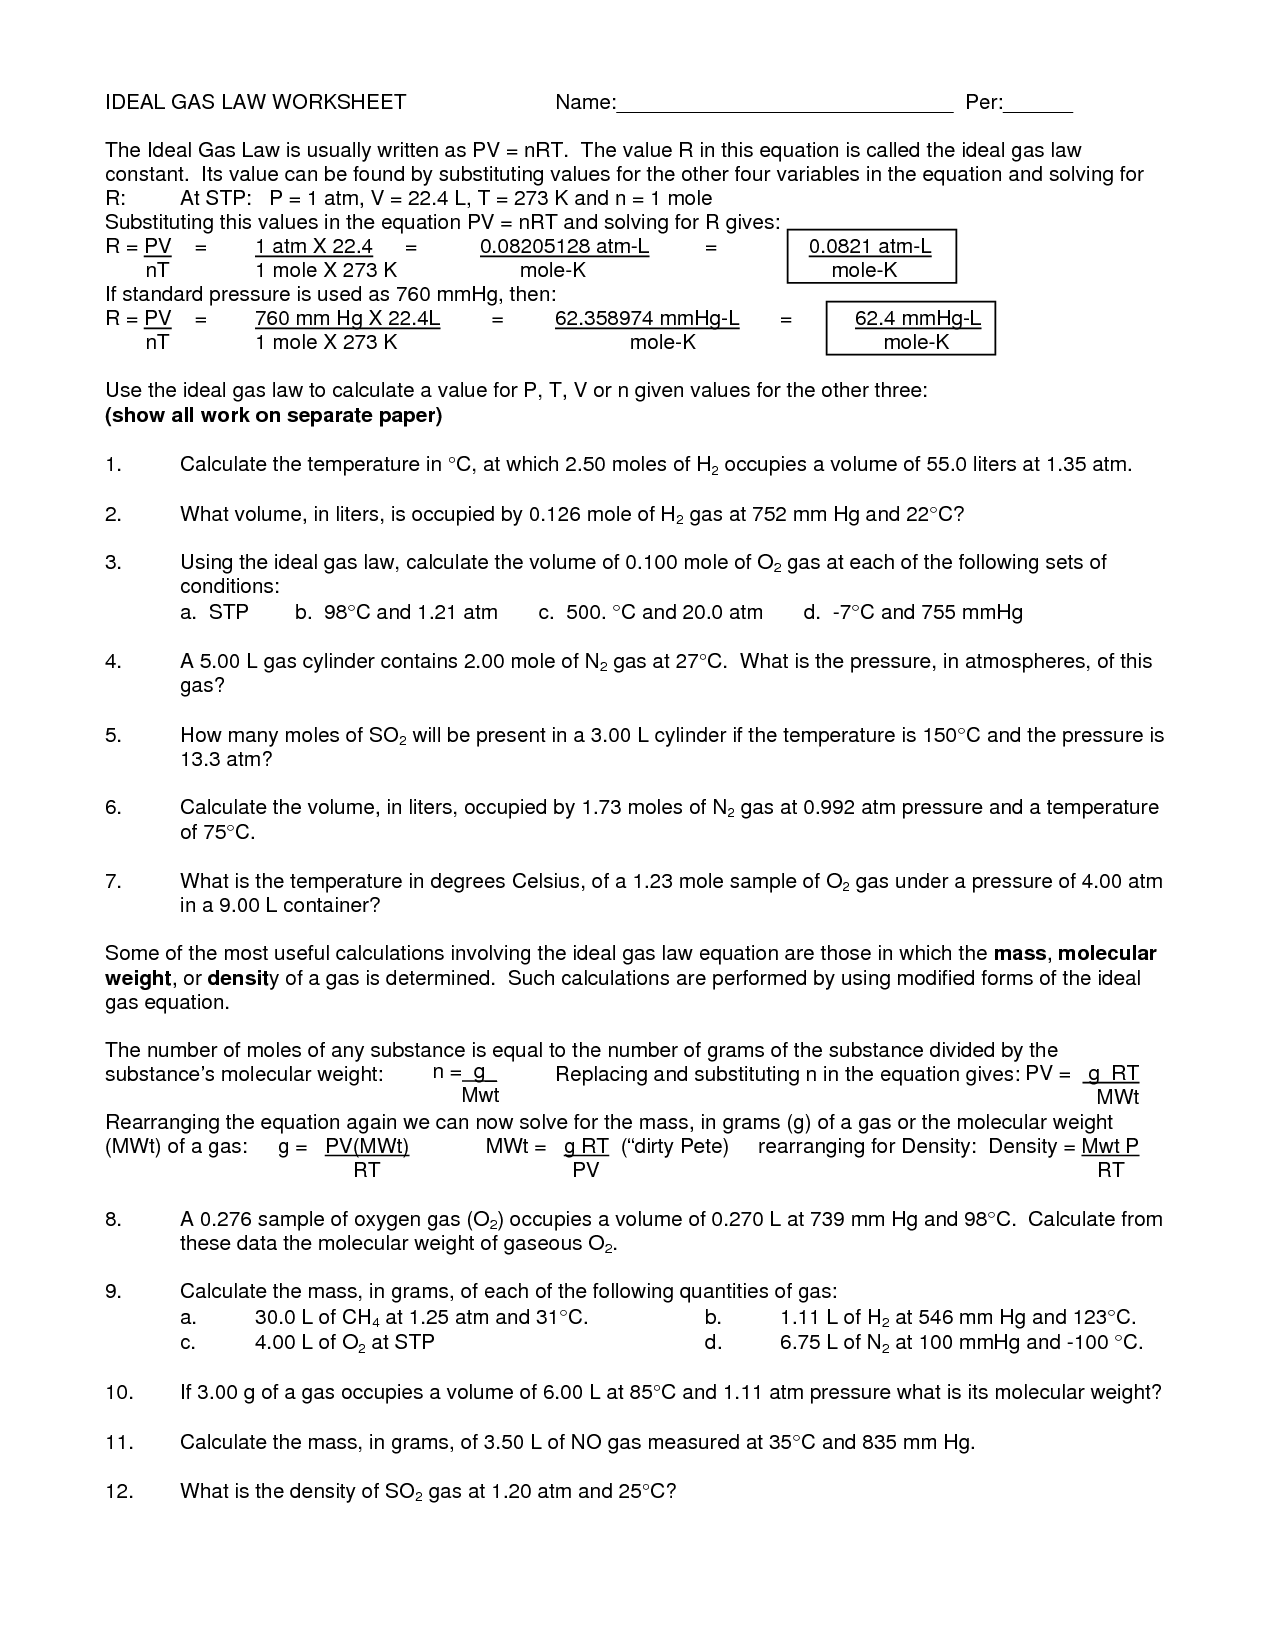 Combined Gas Law Worksheet 1 Answers